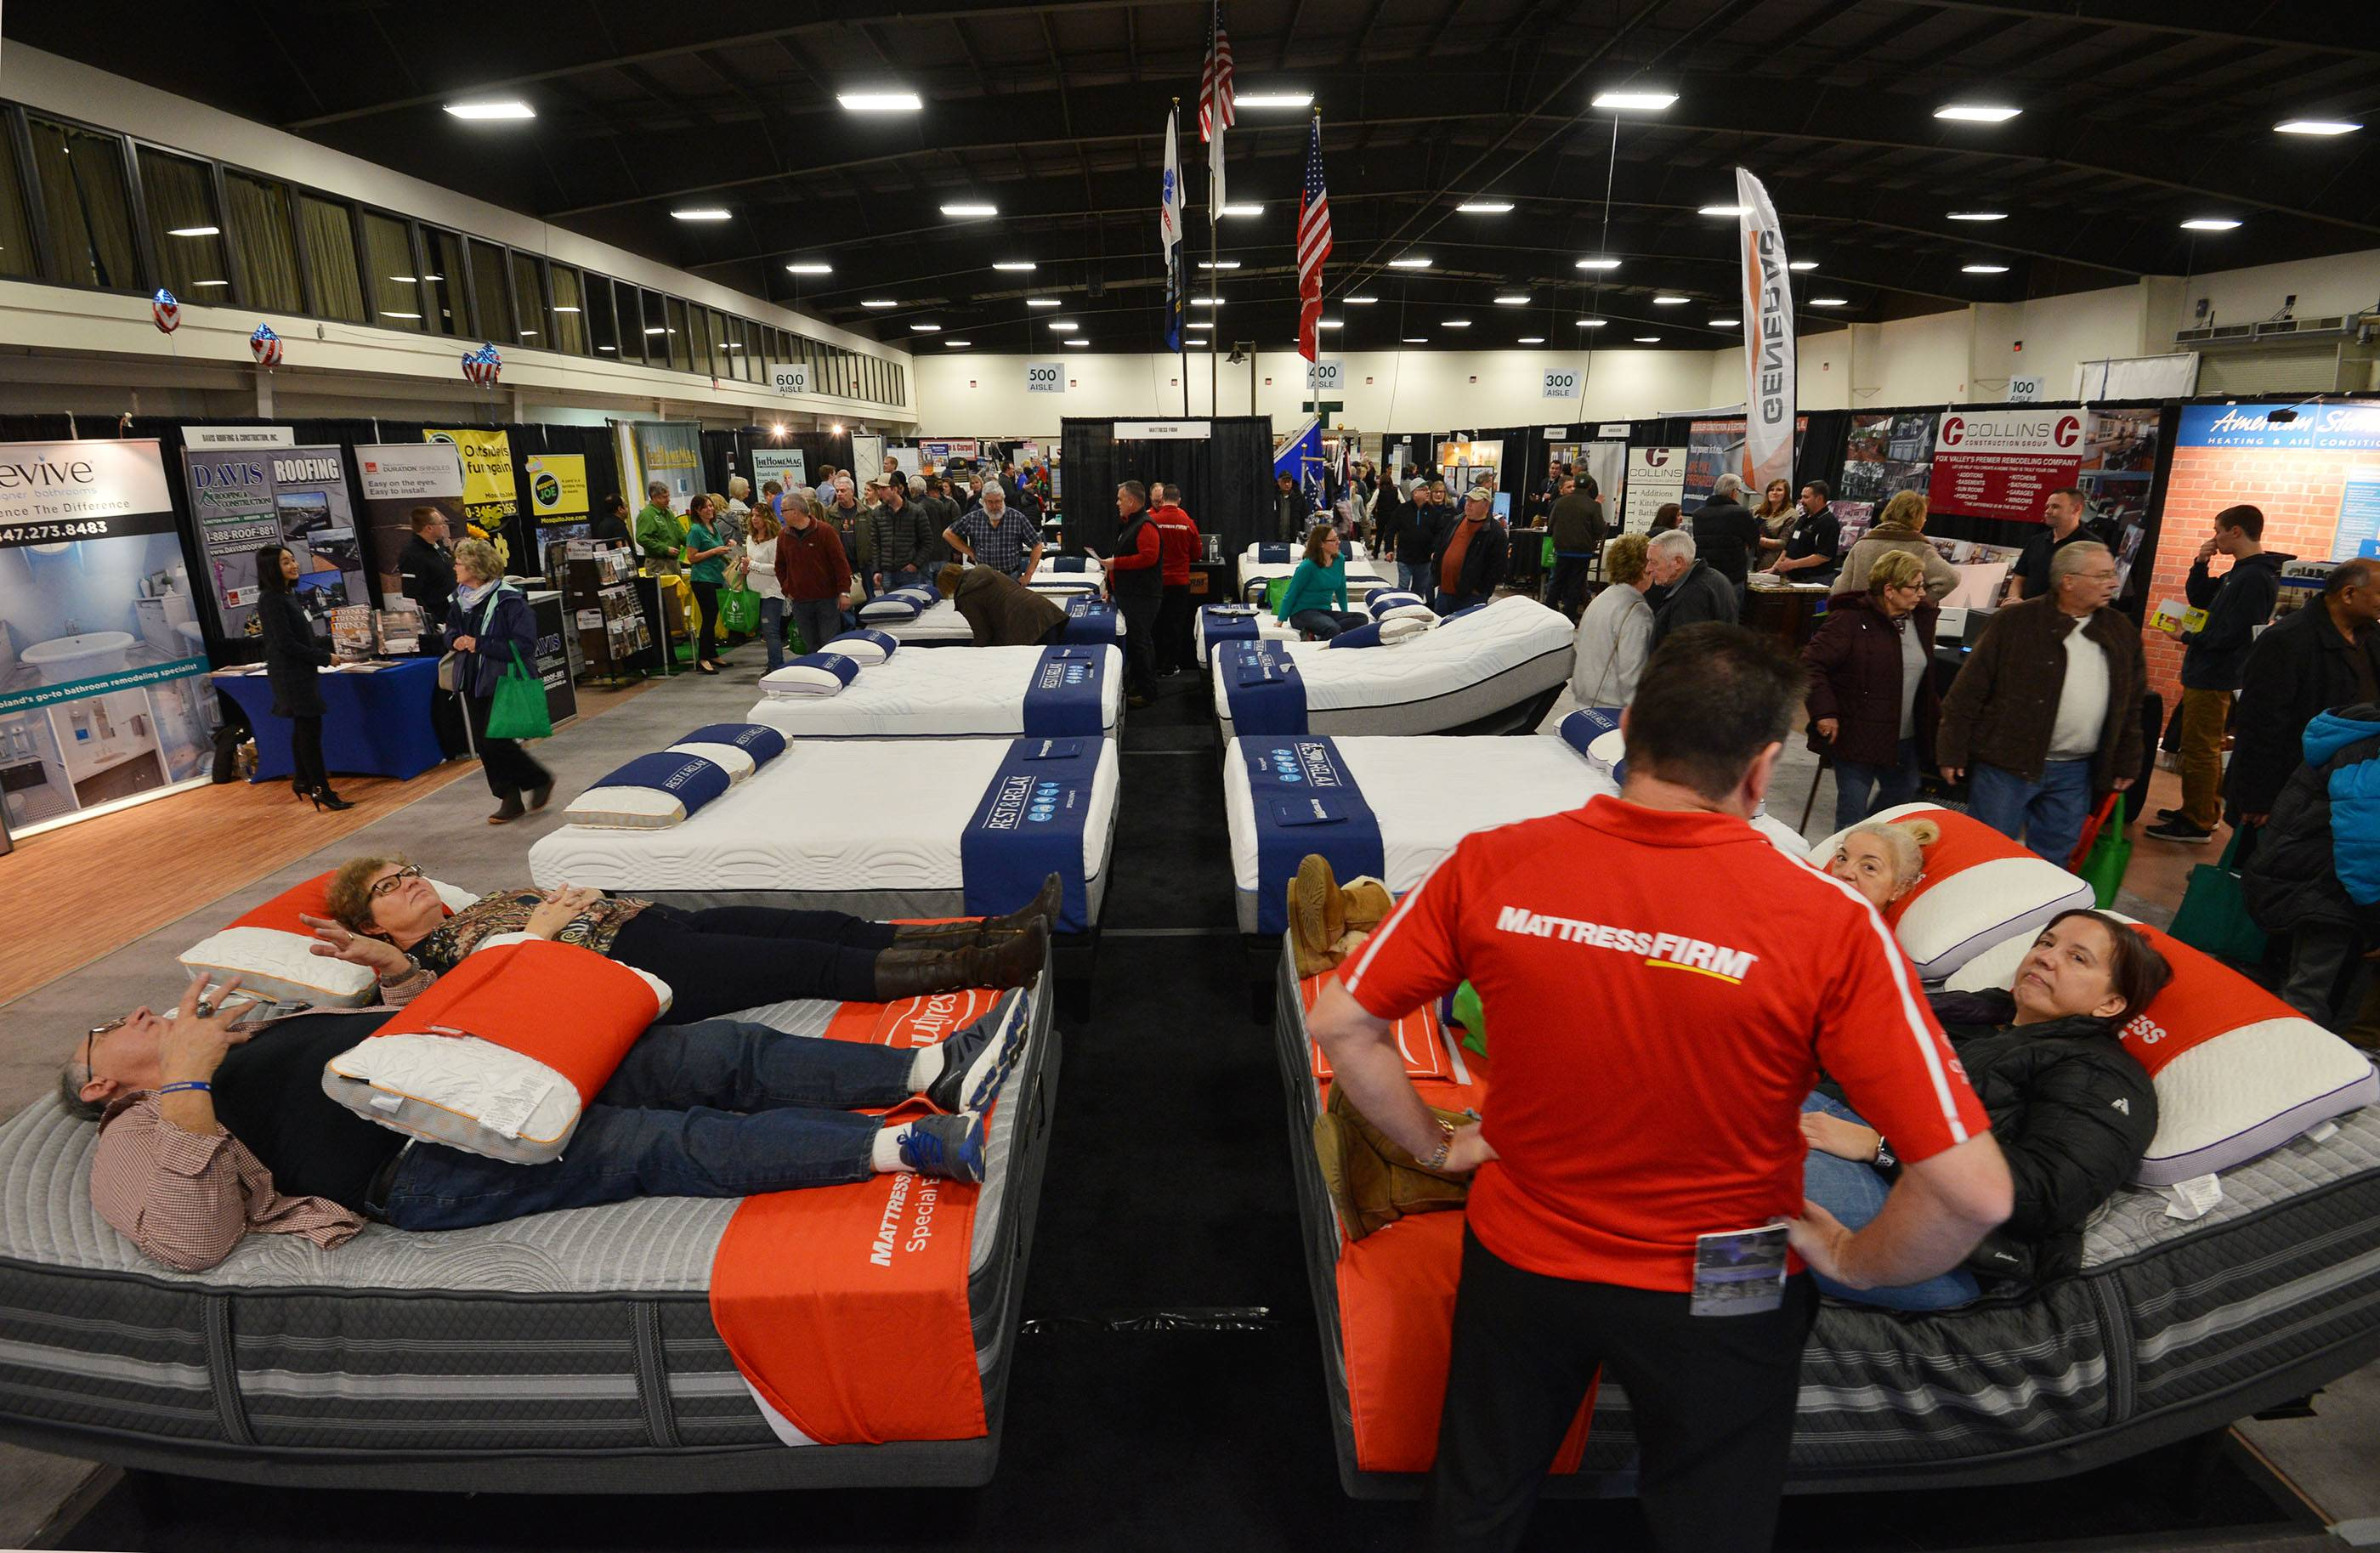 Shoppers try the mattresses at the Mattress FIRM display Saturday at the Old House New House Home Show in the Mega Center at Pheasant Run Resort in St. Charles.